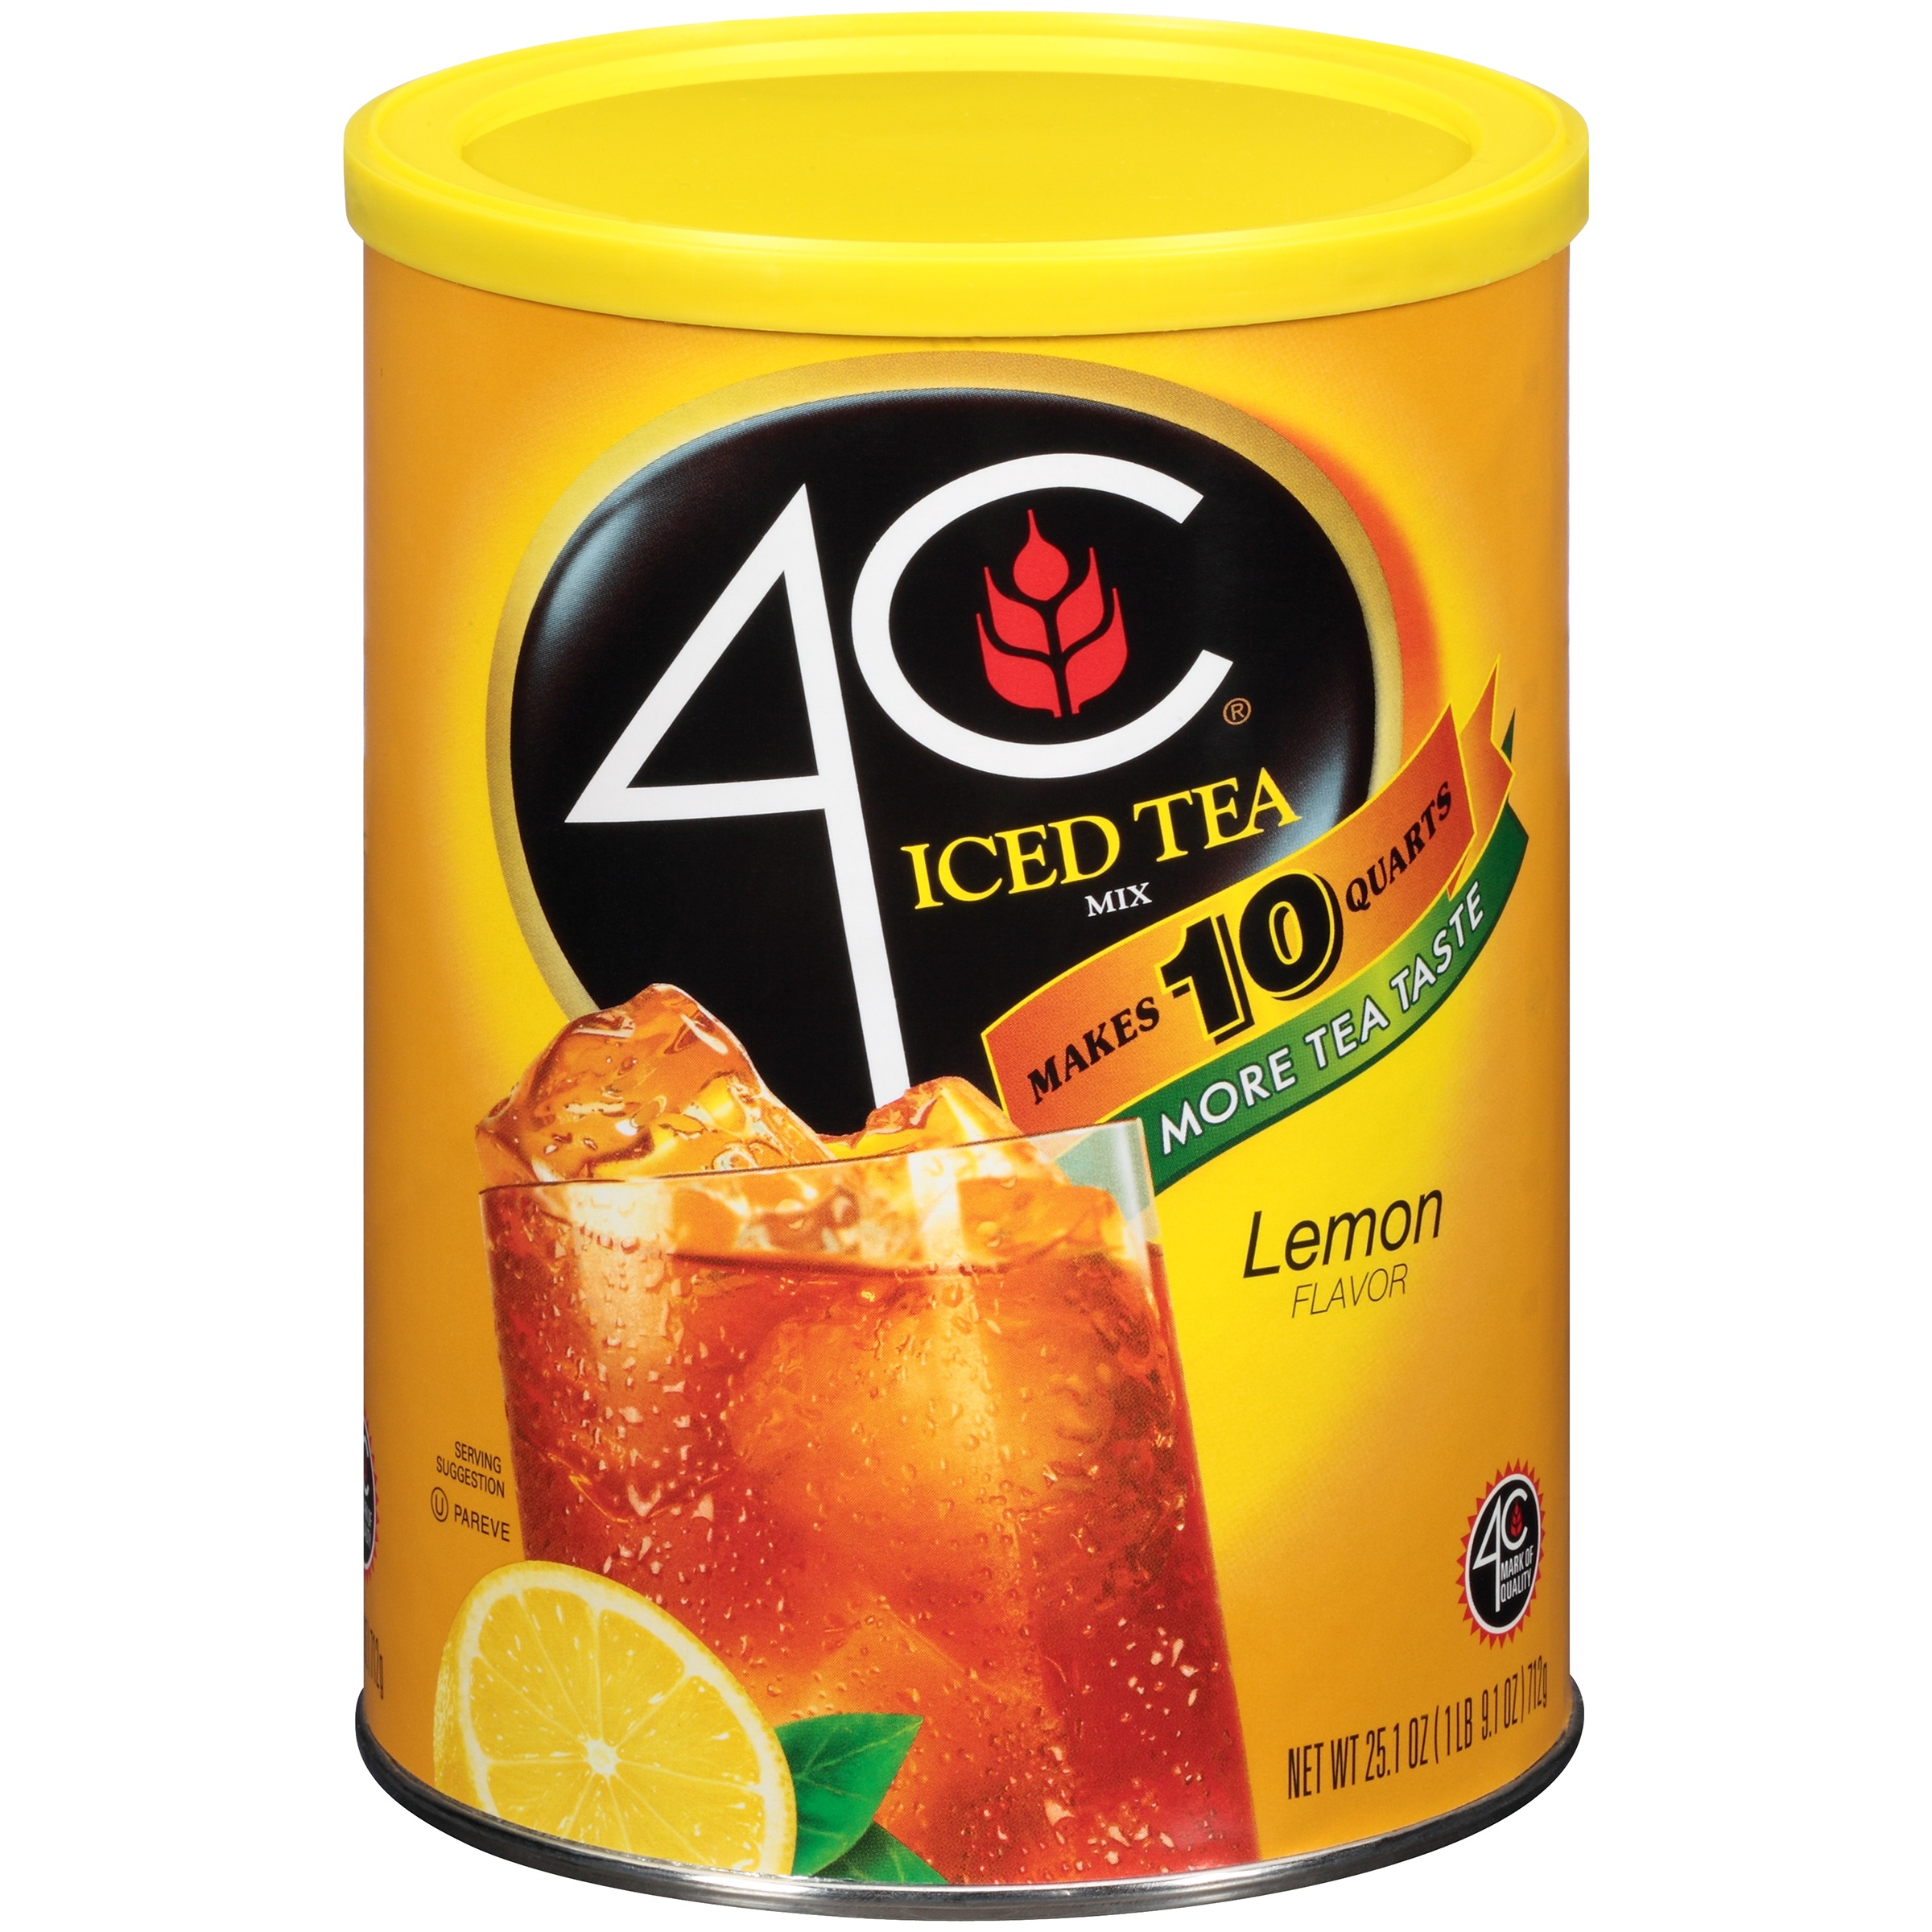 Image of 4C Drink Mix, Lemon Iced Tea, 25.1 Oz, 1 Count